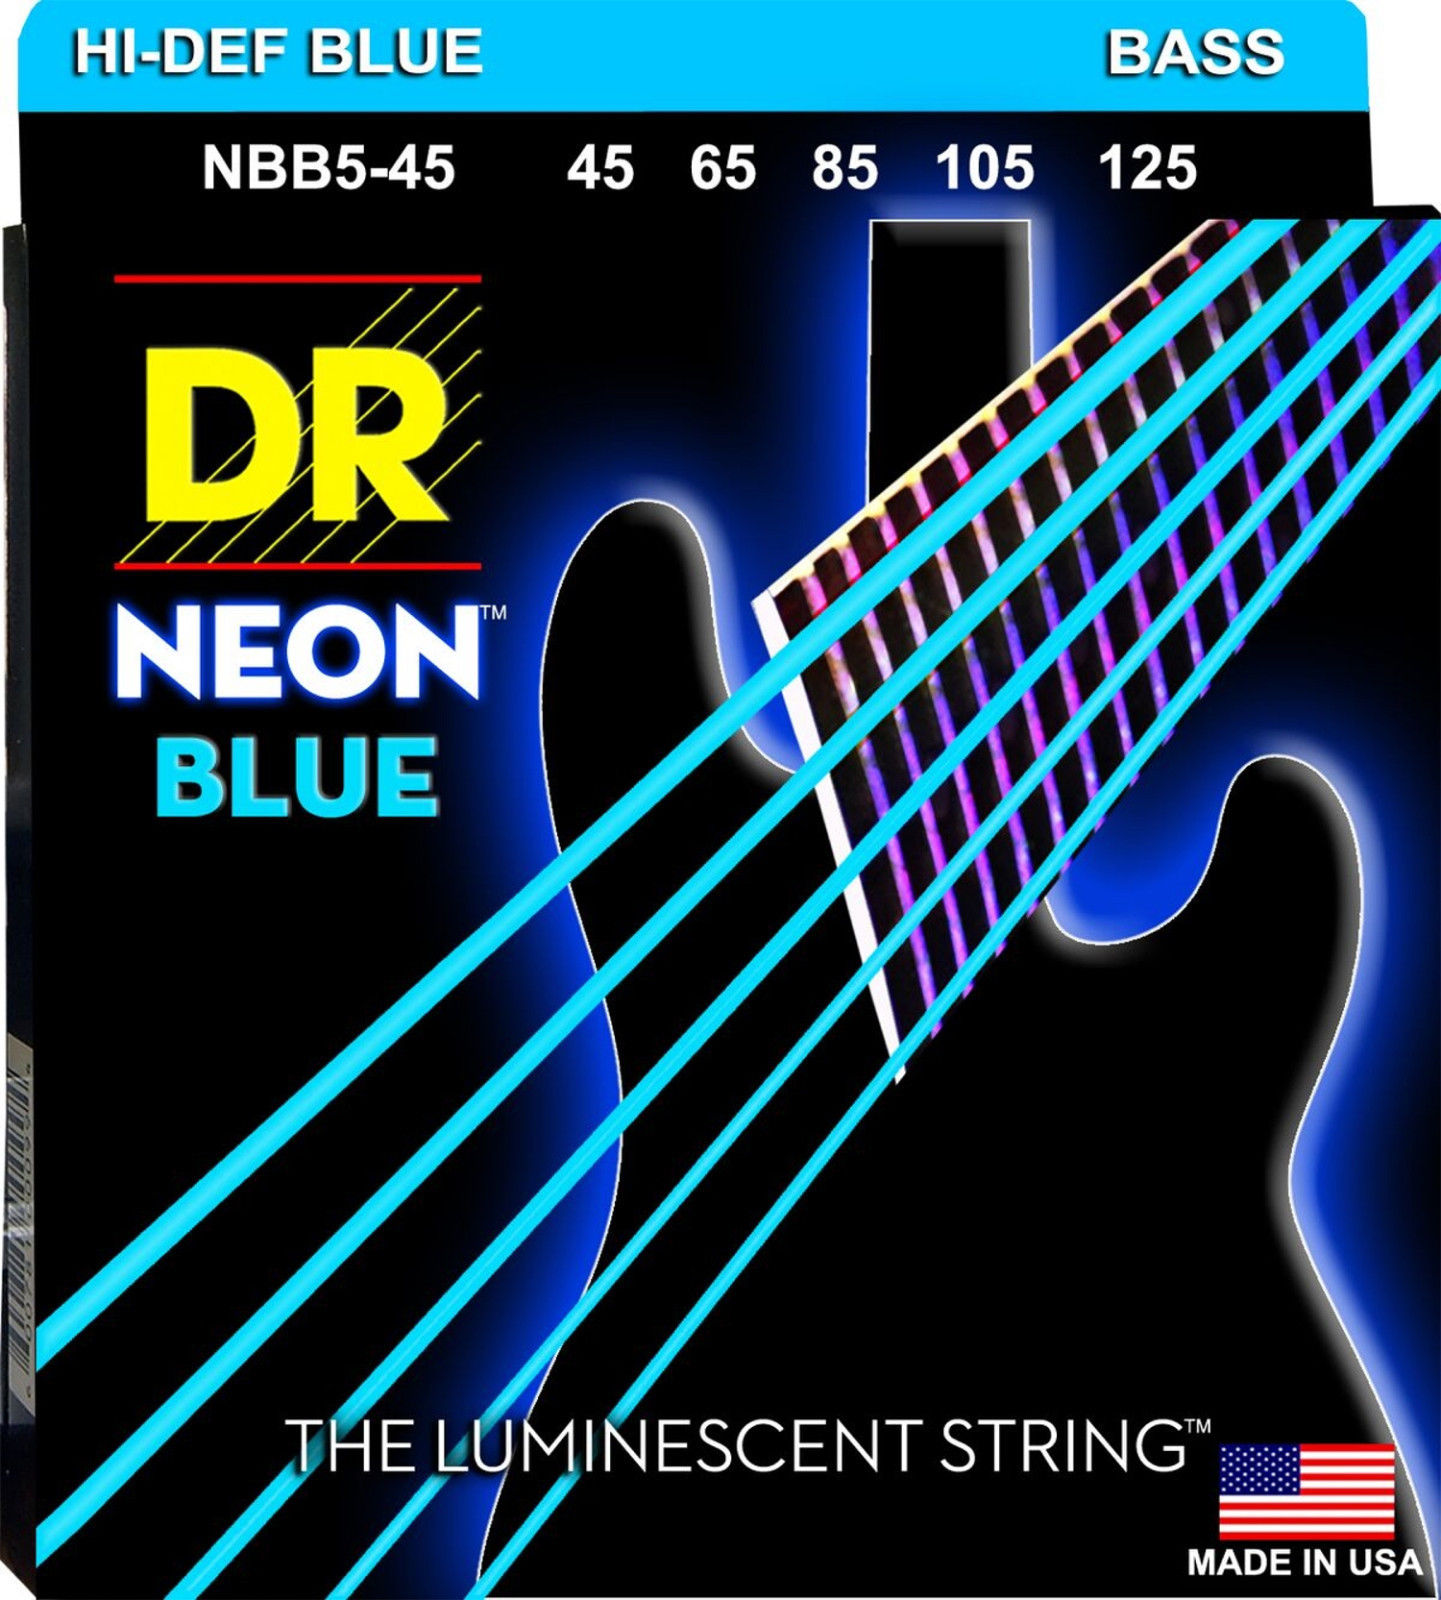 DR K3 Hi-def Neon Blue Luminescent Bass Guitar Strings, Light 40-100 Or Medium 45-105 Or 5-strings 45-125